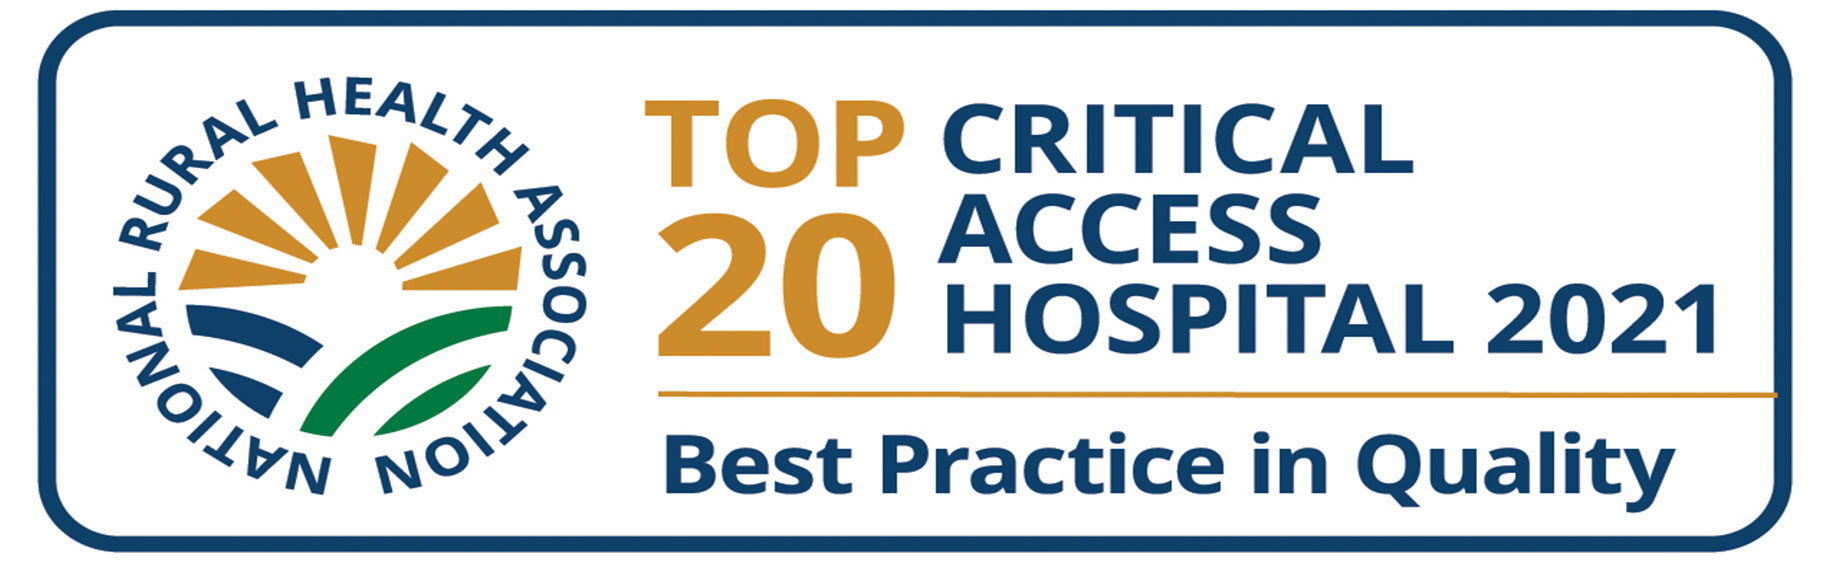 National Rural Health Association   Top 20 Critical Access Hospital 2021  Best Practice in Quality